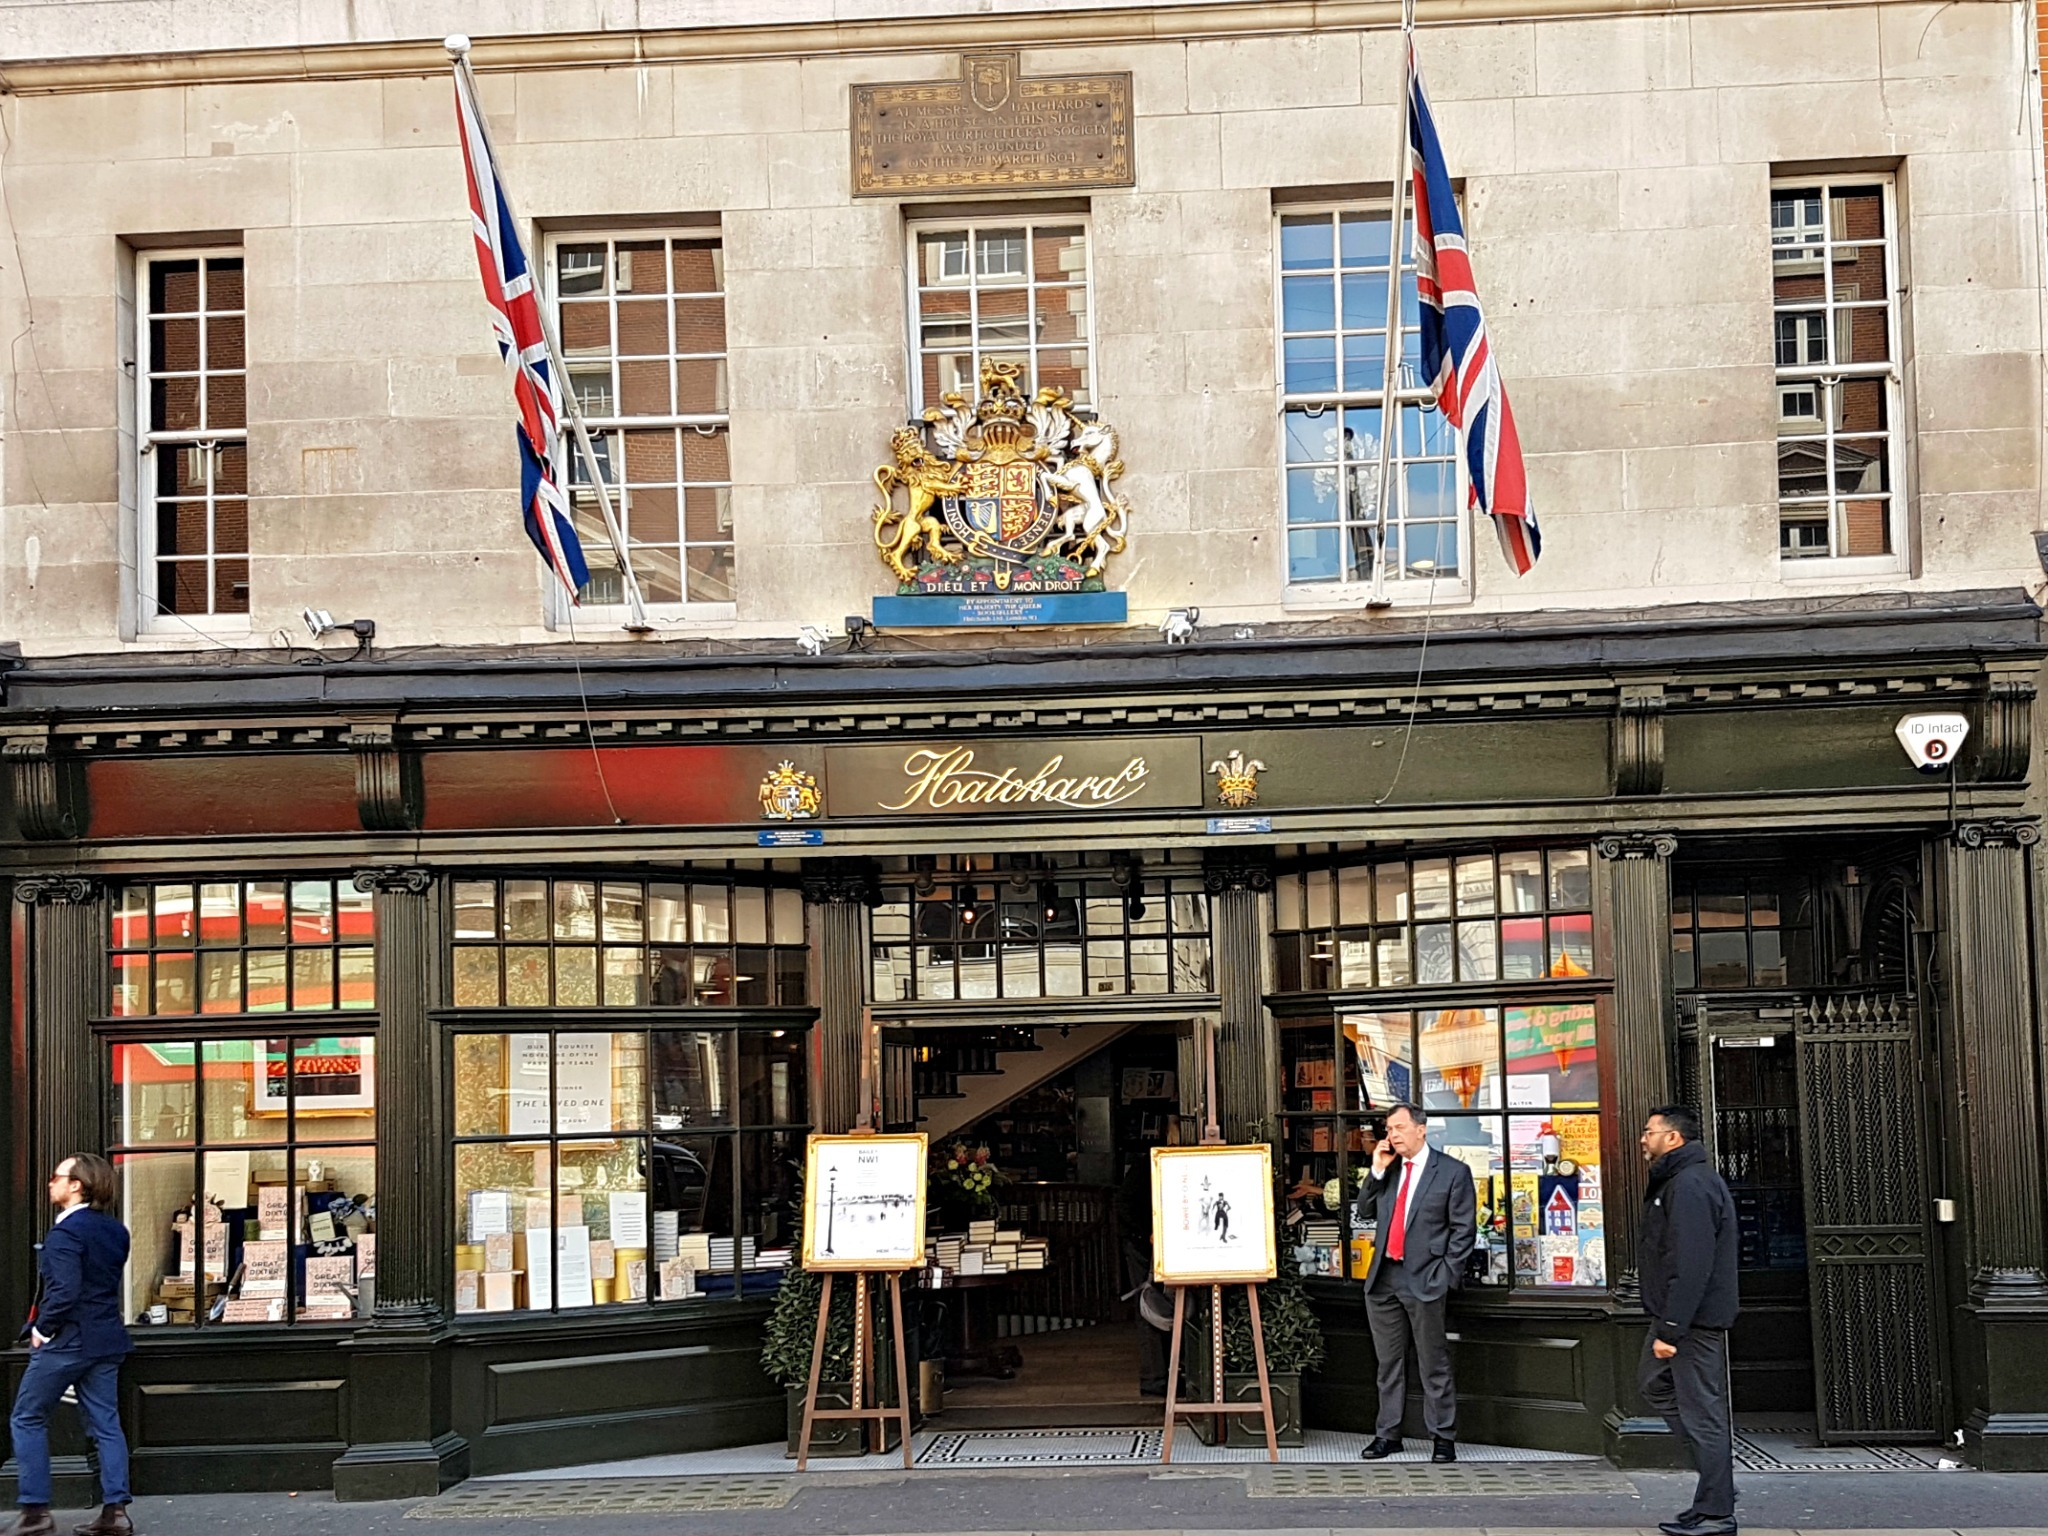 Hatchards, Oscar Wilde's favourite bookshop